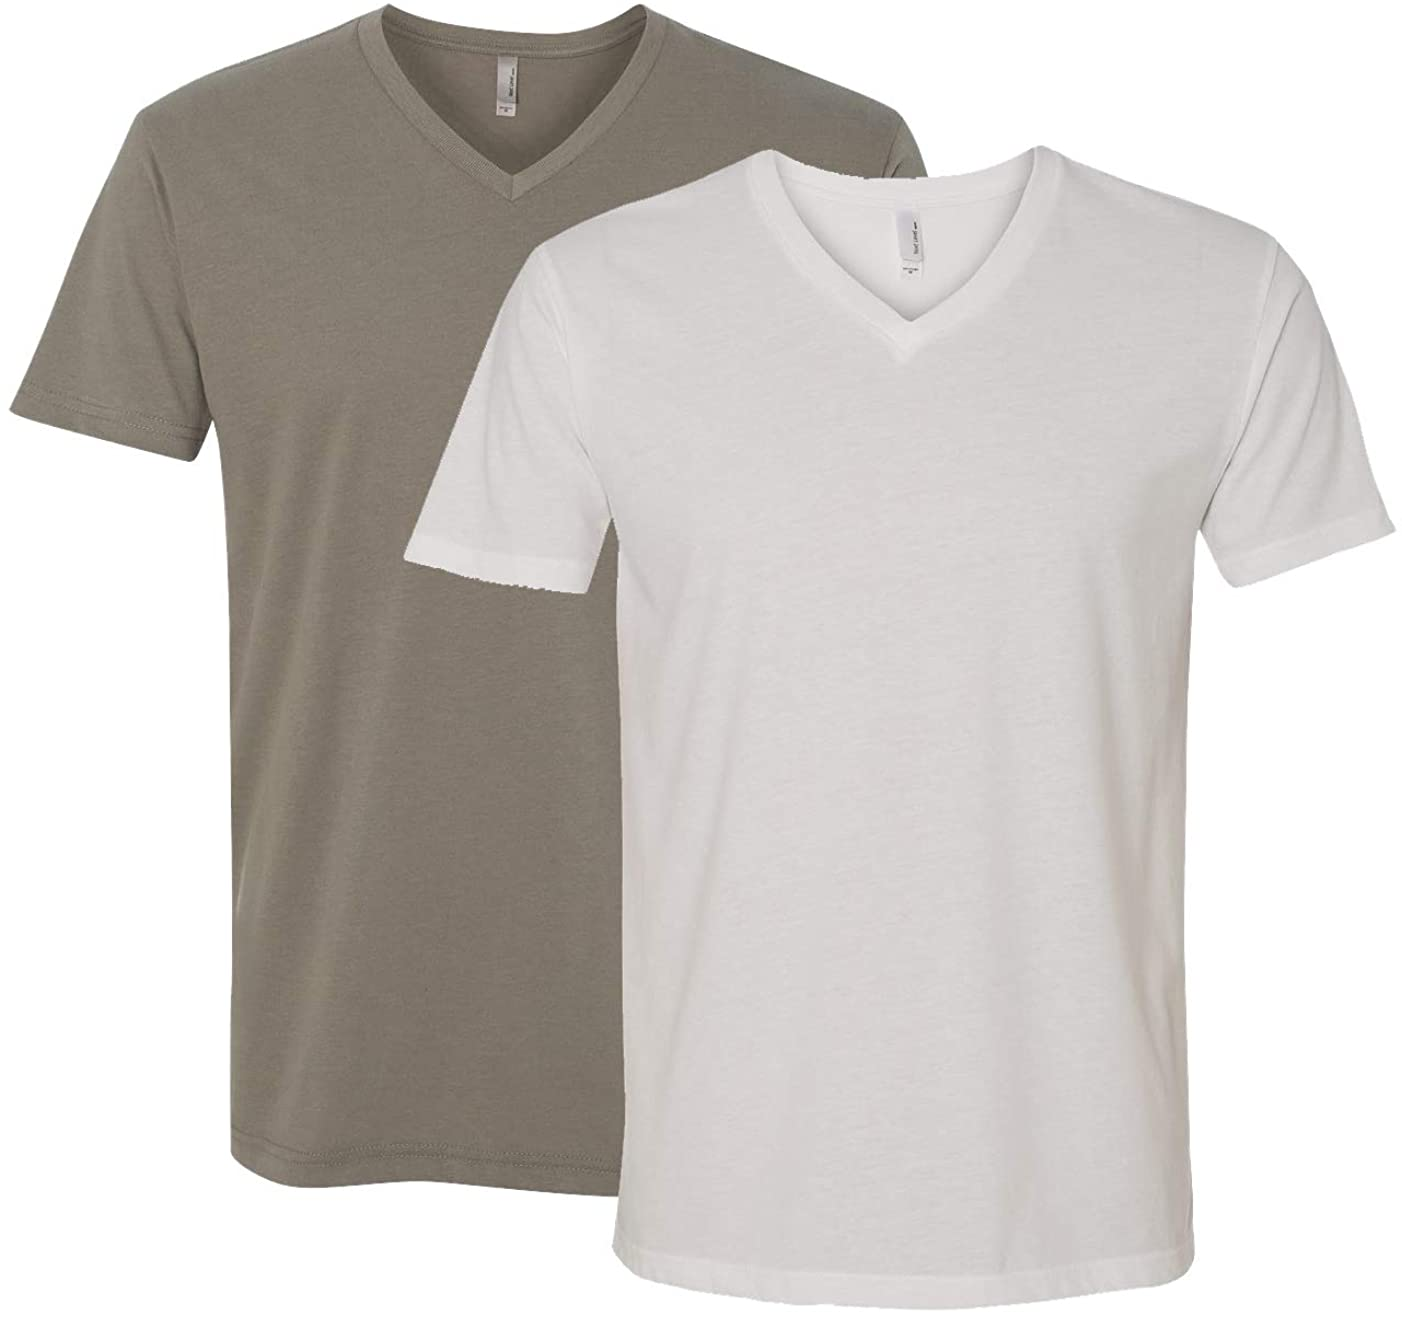 Next Level Apparel 6440 Mens Premium Fitted Sueded V-Neck Tee -2 Pack, Warm Grey + White (2 Shirts) - Large